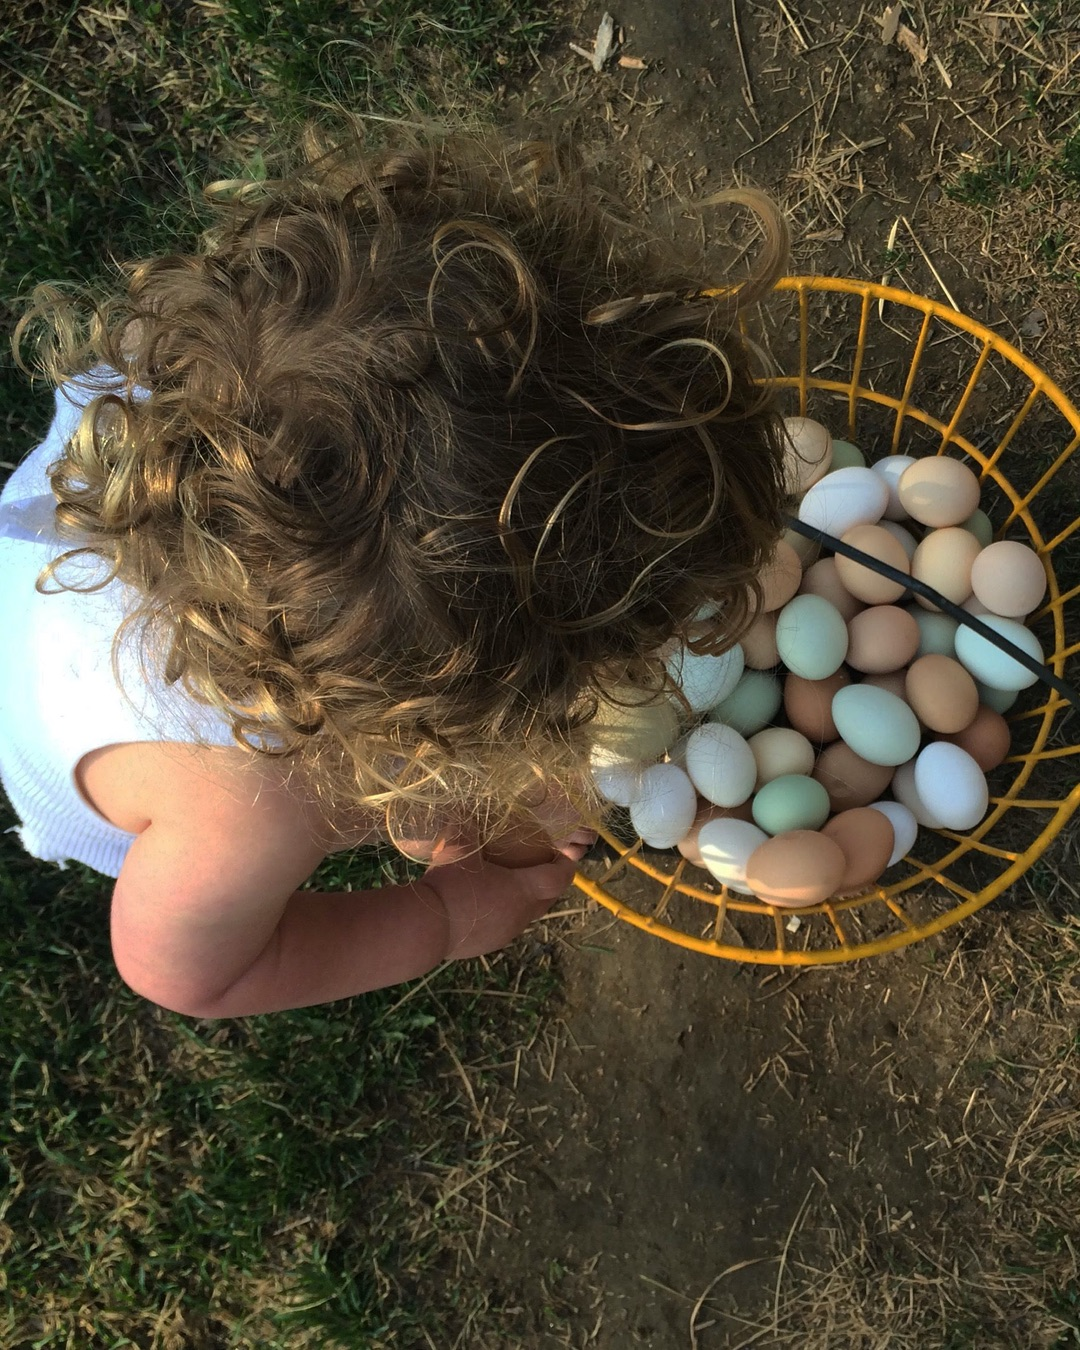 backyard-hens-kids-ig-1